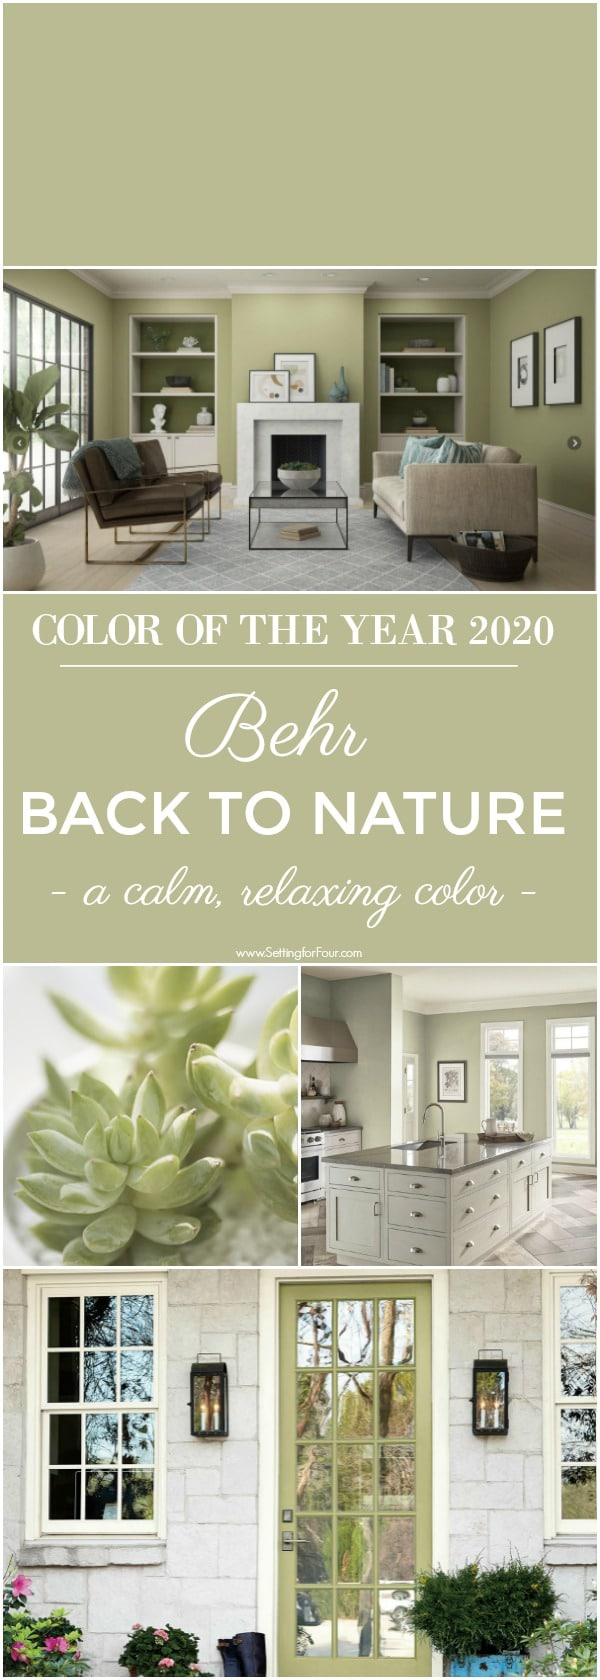 Behr back to nature paint color color of the year 2020 - Behr color of the year ...